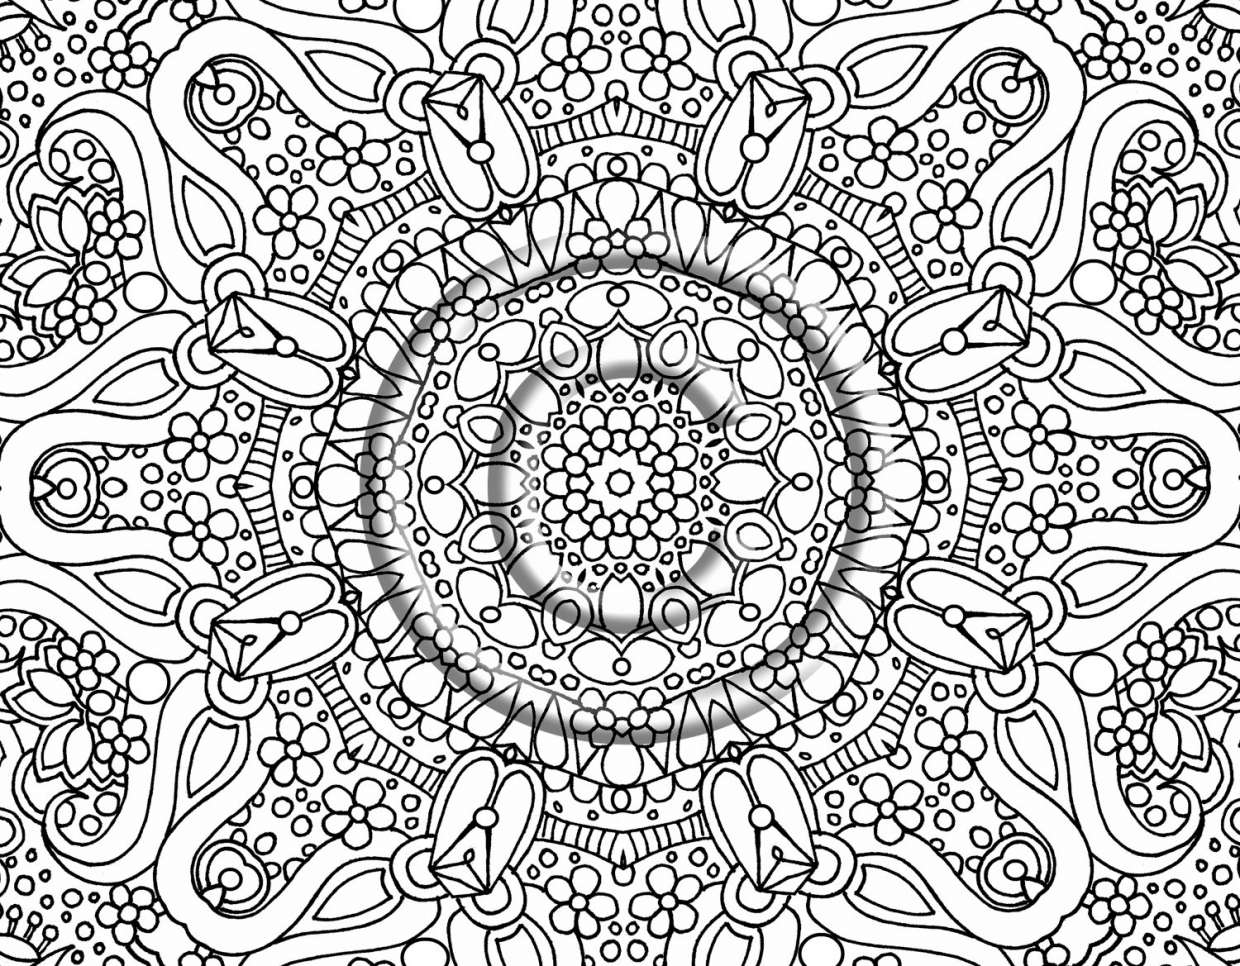 Get This Free Complex Coloring